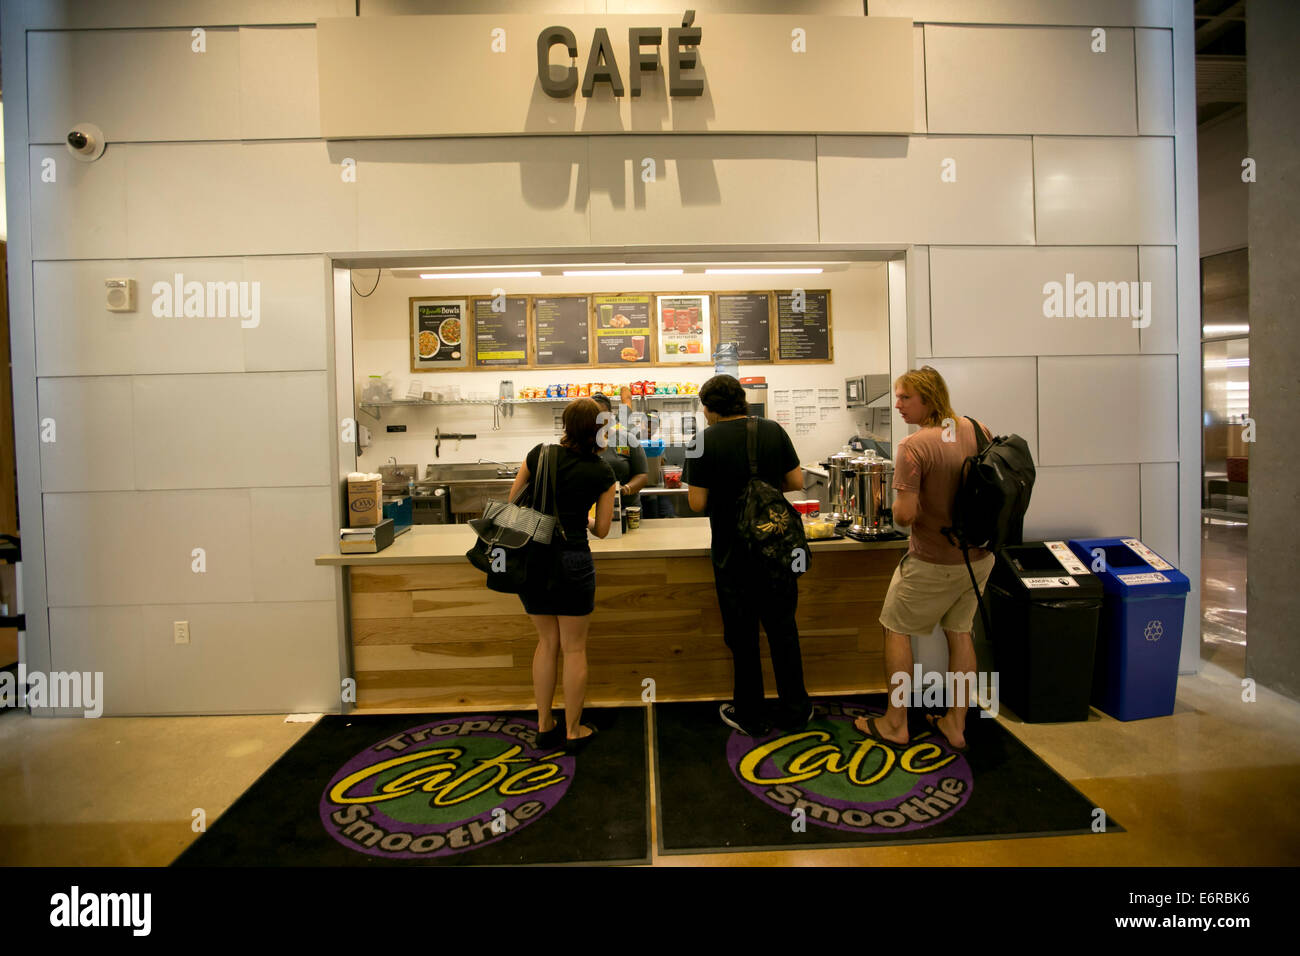 Cafe Restaurant Inside Austin Community College Building Where Students Can Purchase Food